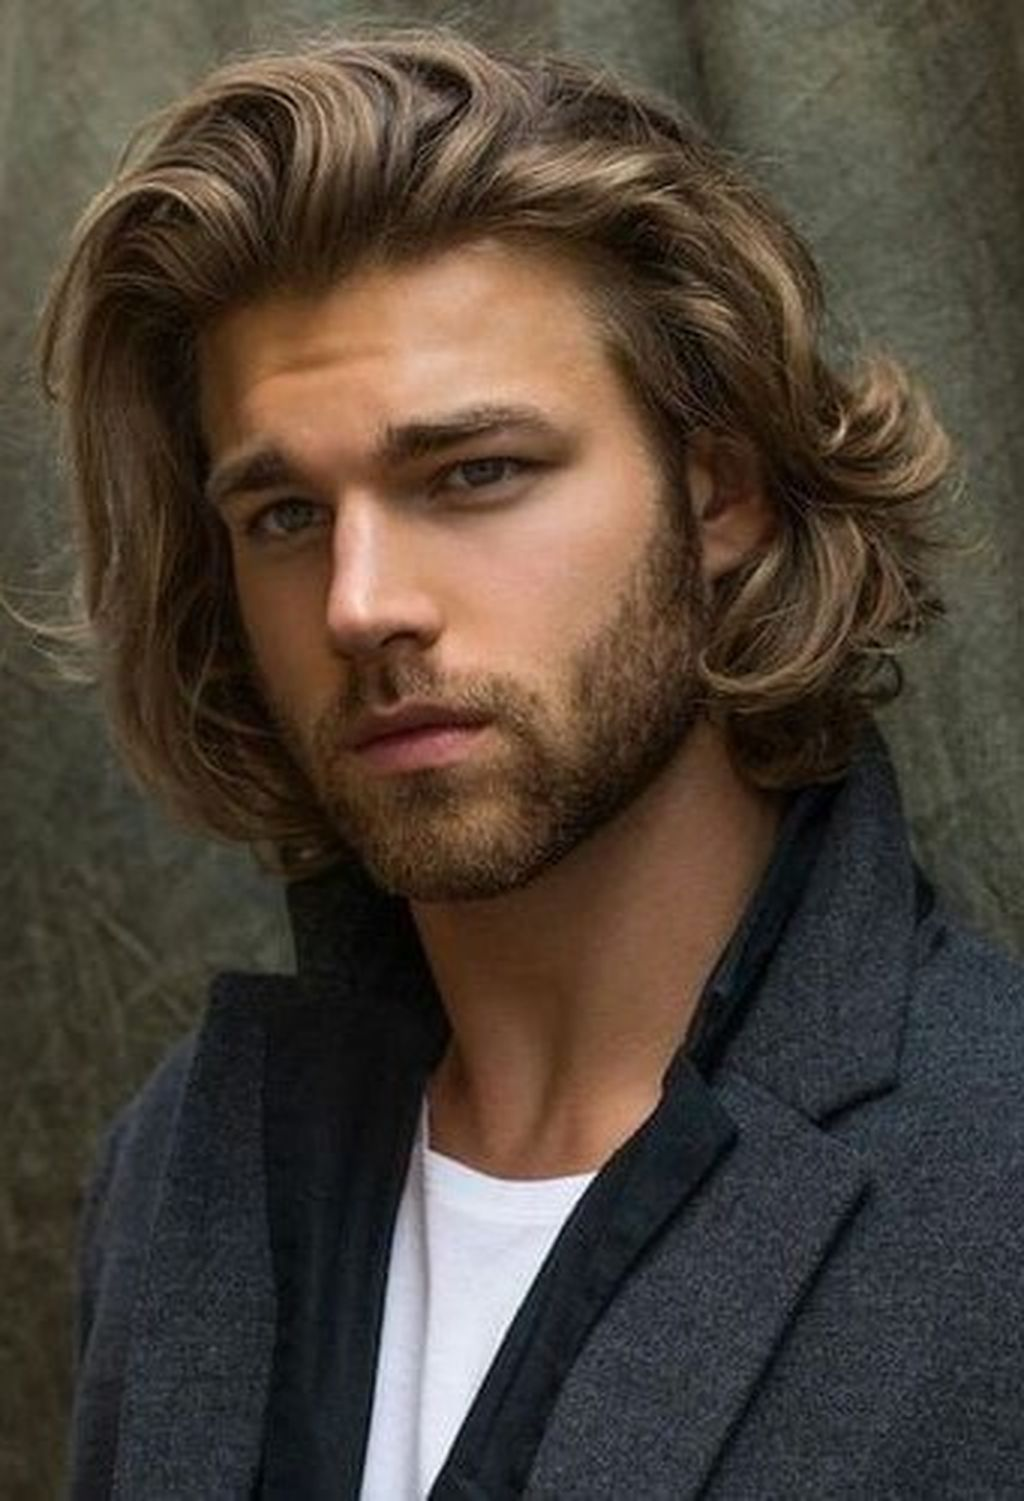 40 lovely hairstyles ideas for medium hair men to have